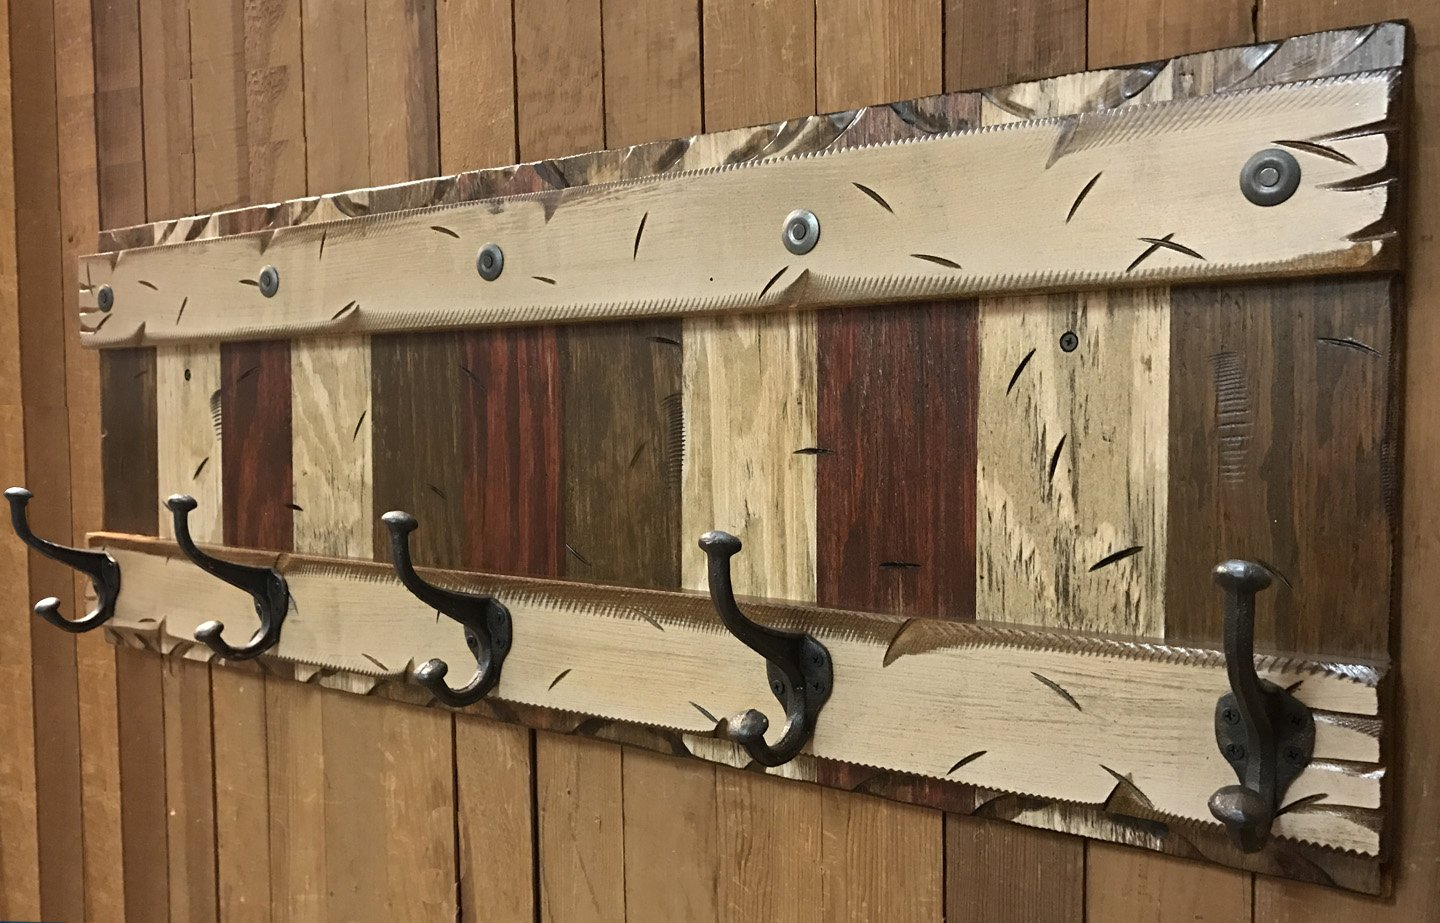 COATRACK with 5 metal hooks 44'' RUSTIC Coat Rack Red BURG BROWN COMBO Cabin Wall Home Hallway Entryway Decor Burgundy Antique White Cream